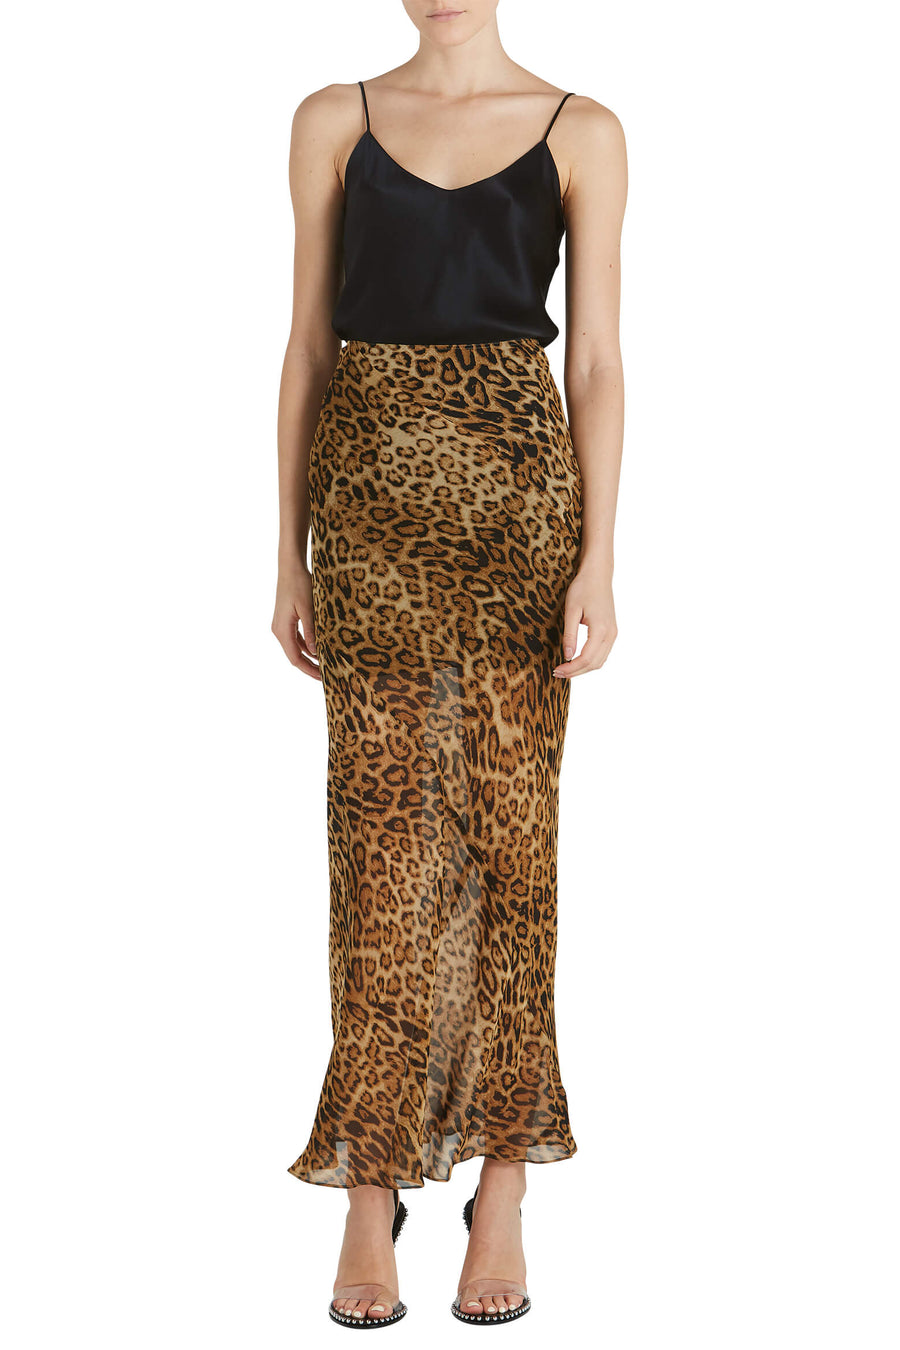 NIli Lotan Ella Skirt in Ginger Leopard from The New Trend